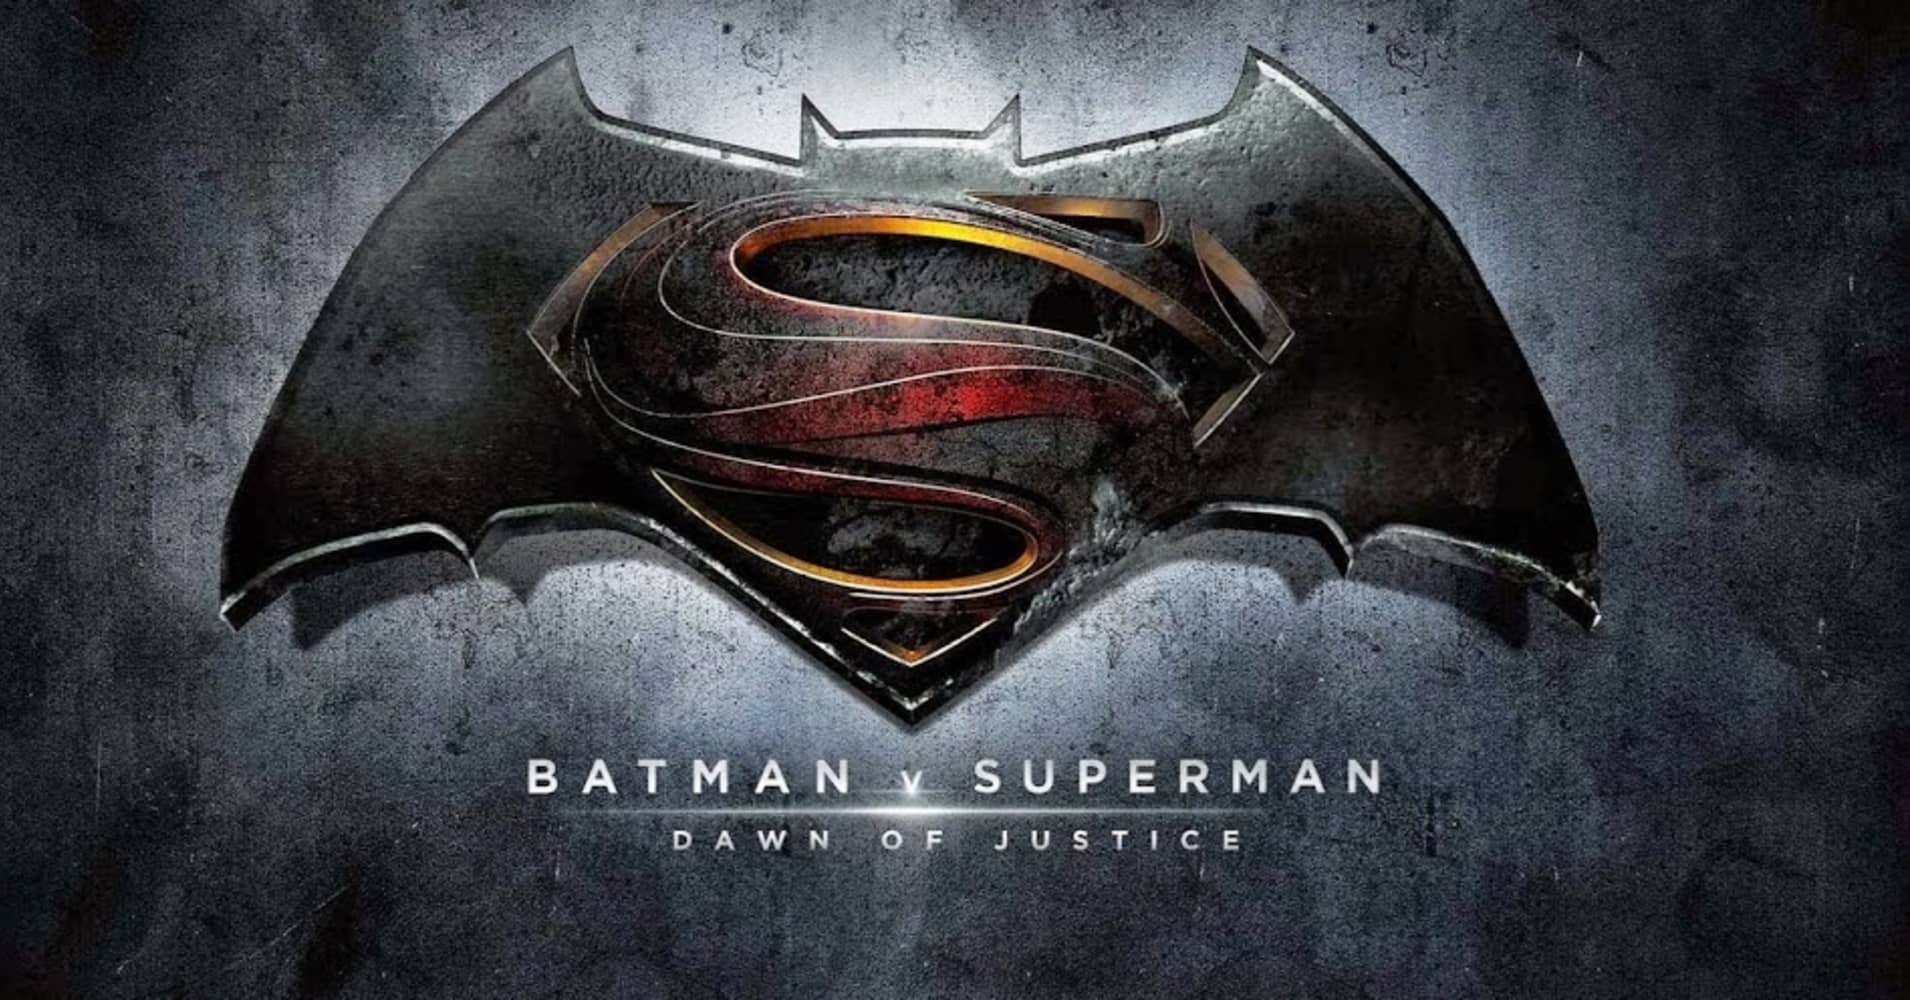 Batman vs. Superman may not boost Warner Bros.